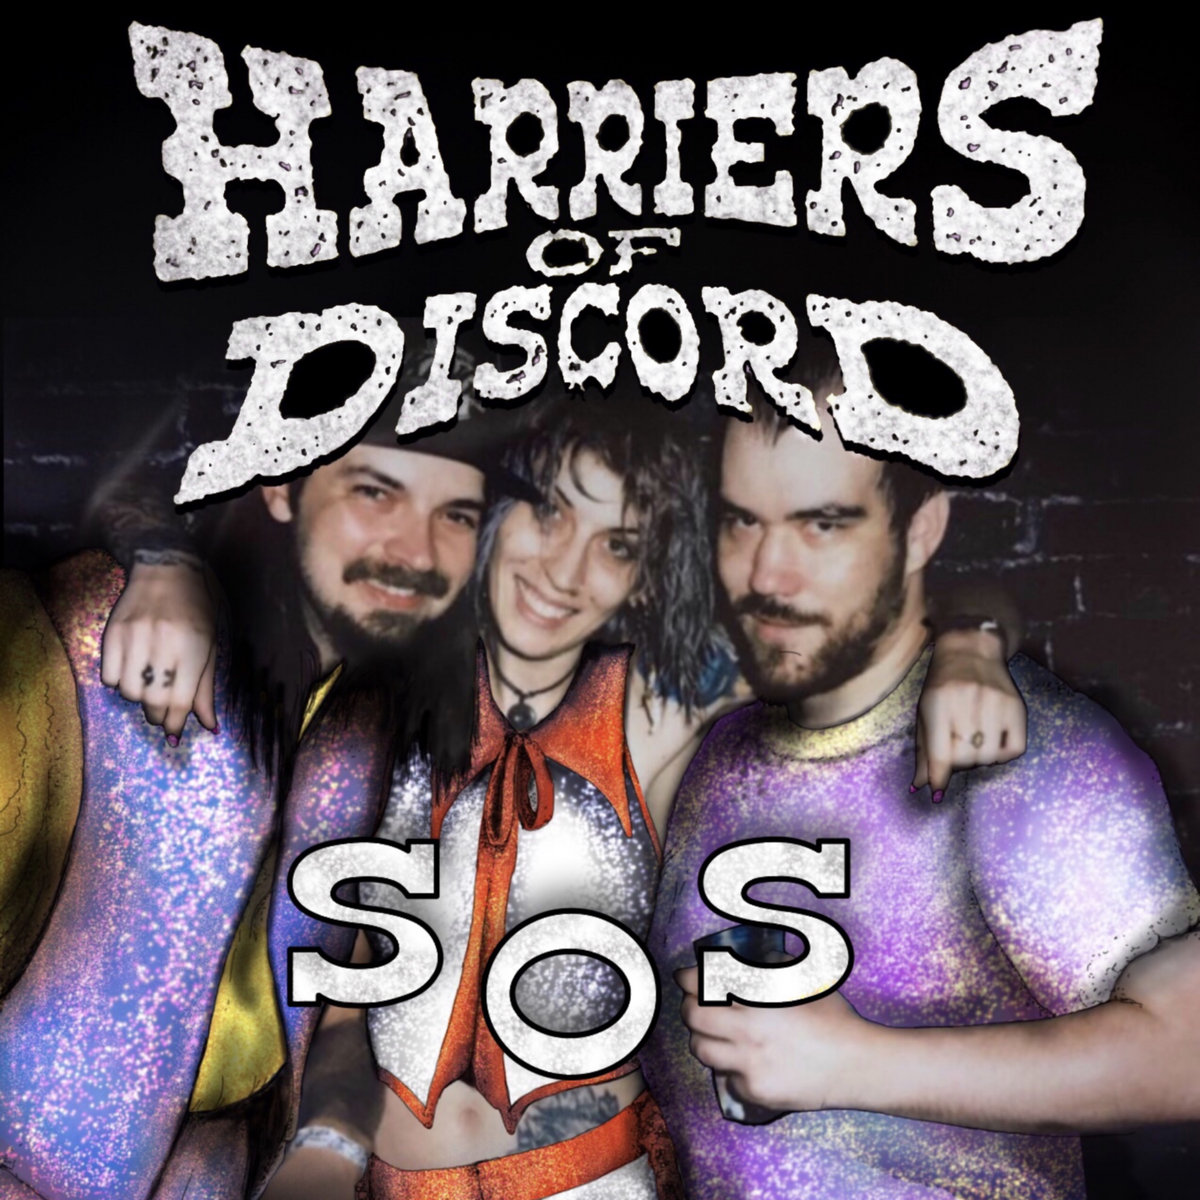 SOS by Harriers Of Discord